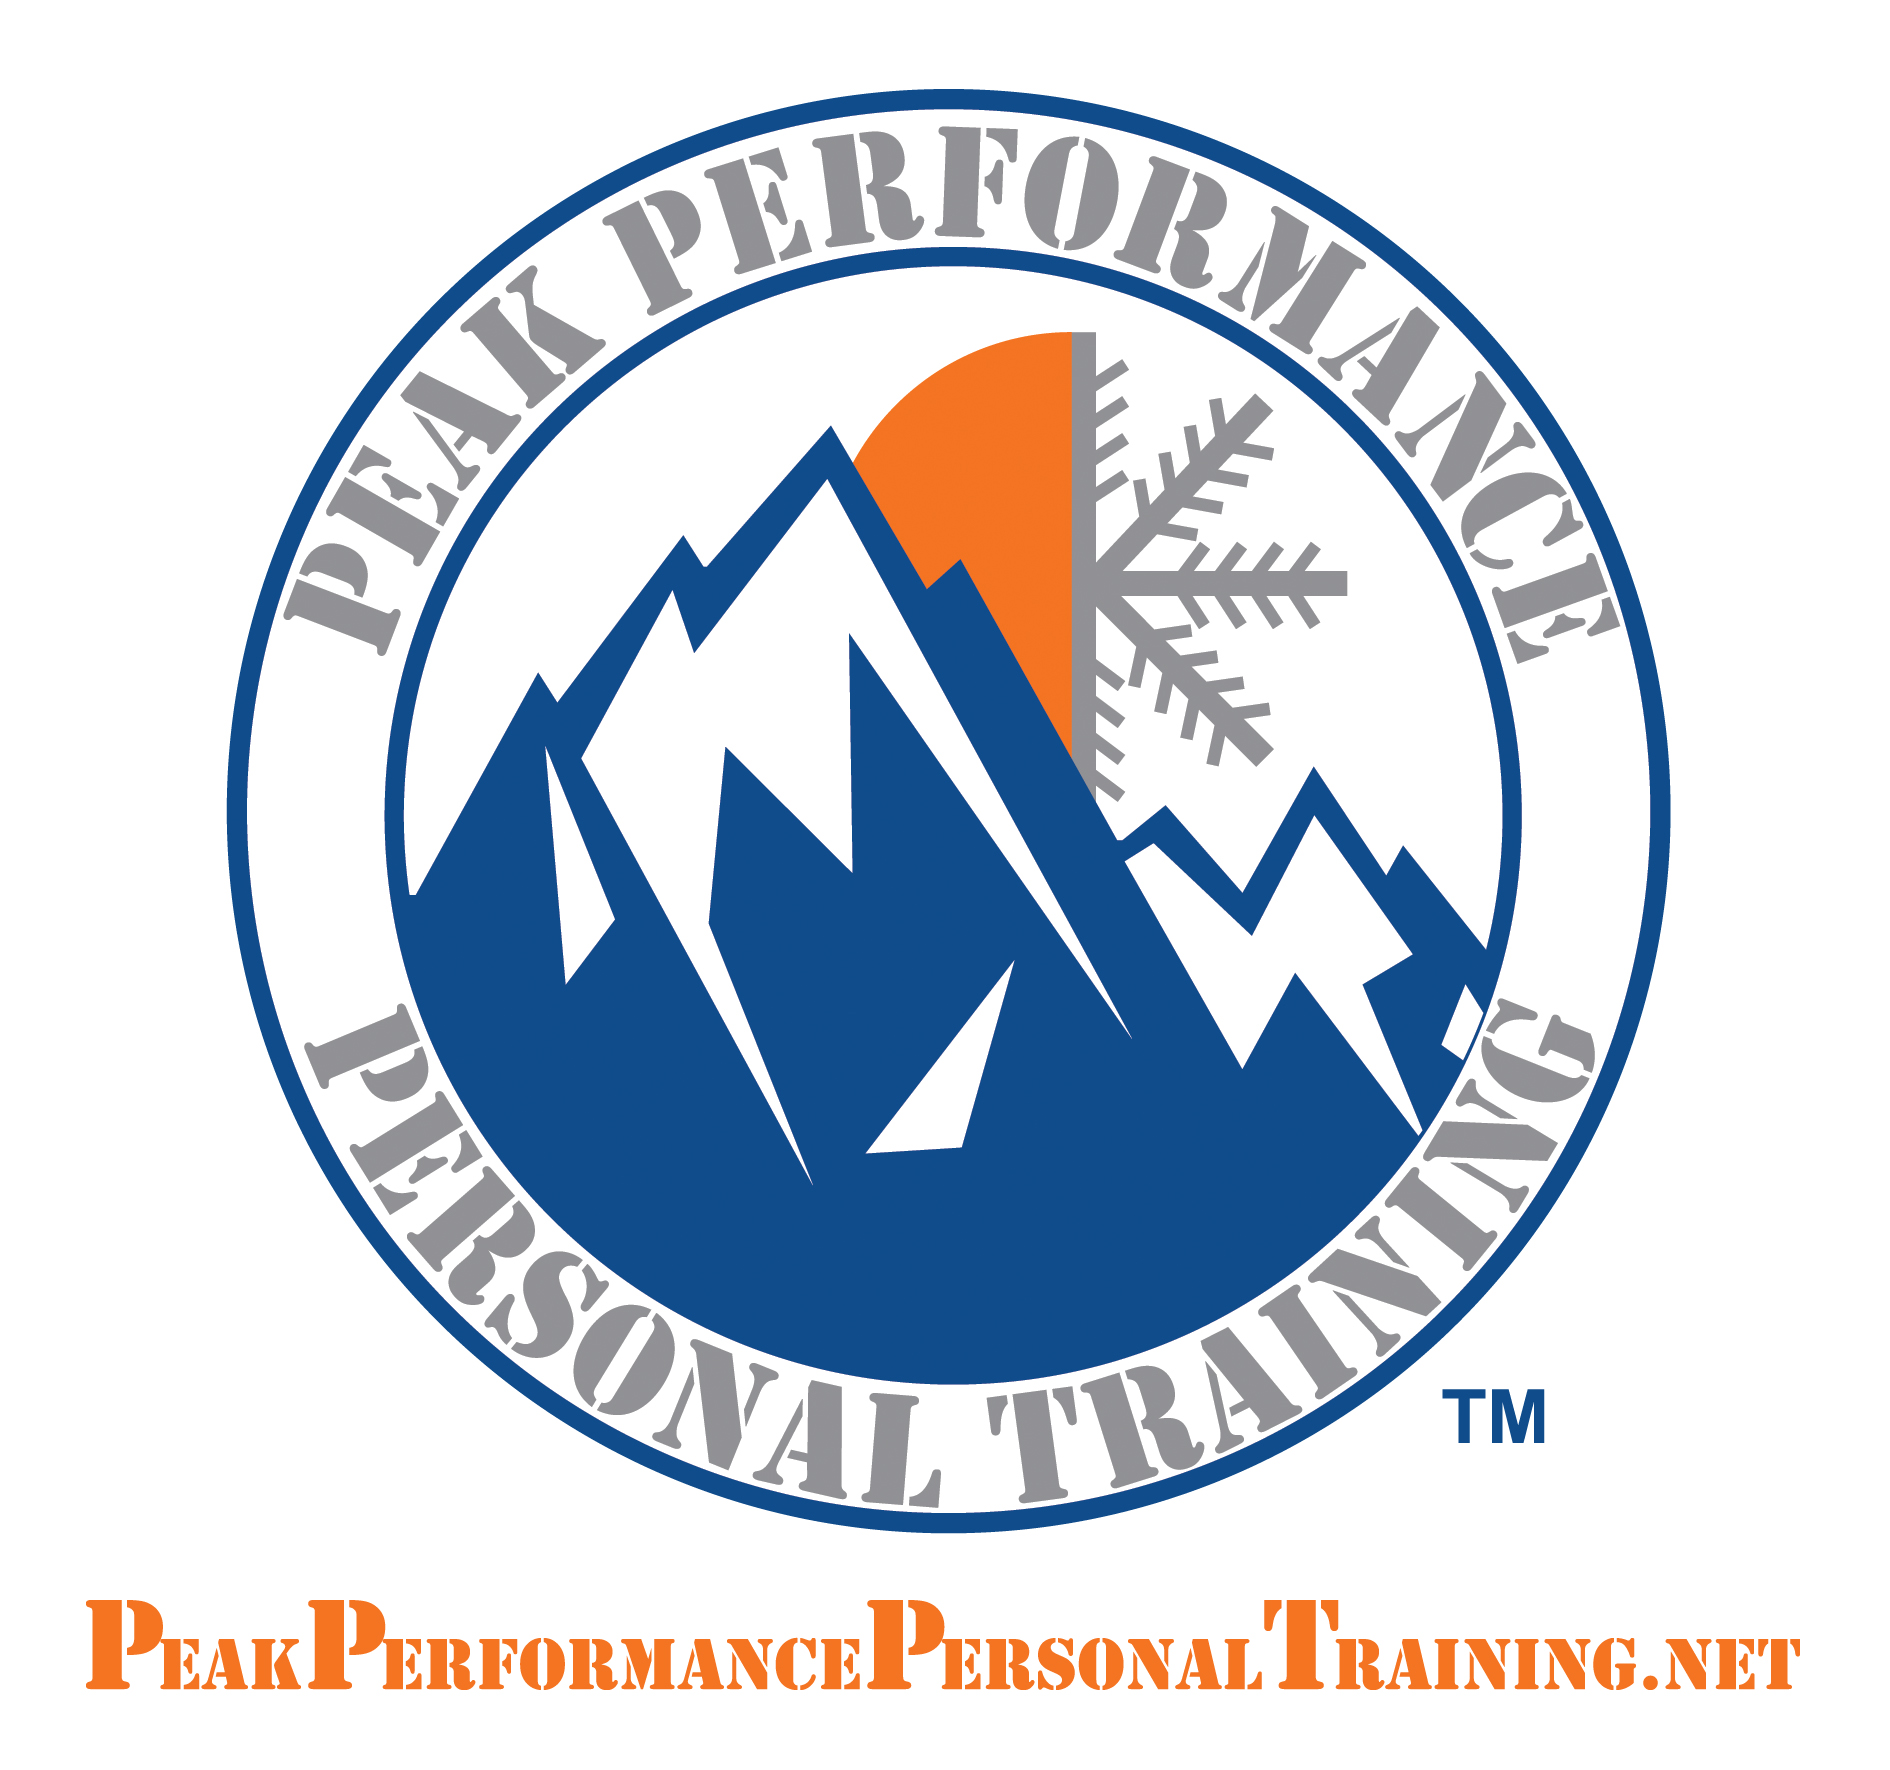 brier peak performance logo final color with orange site.jpg